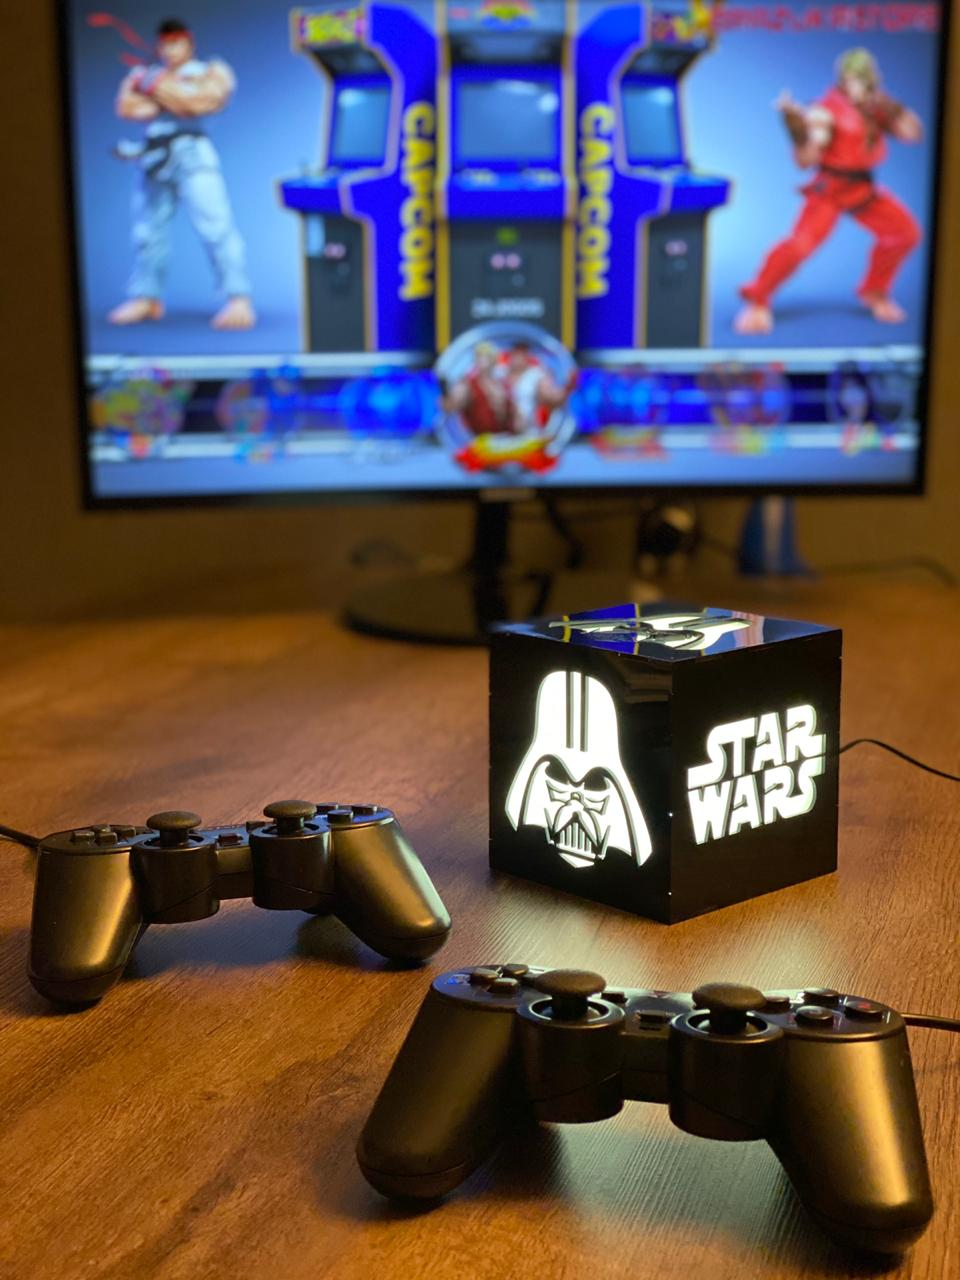 Cubo Retrô Box Star Wars: Fliperama Arcade Game (20.000 Jogos) PlayStation/Nintendo/SNES/Mega Drive/Sega Saturn